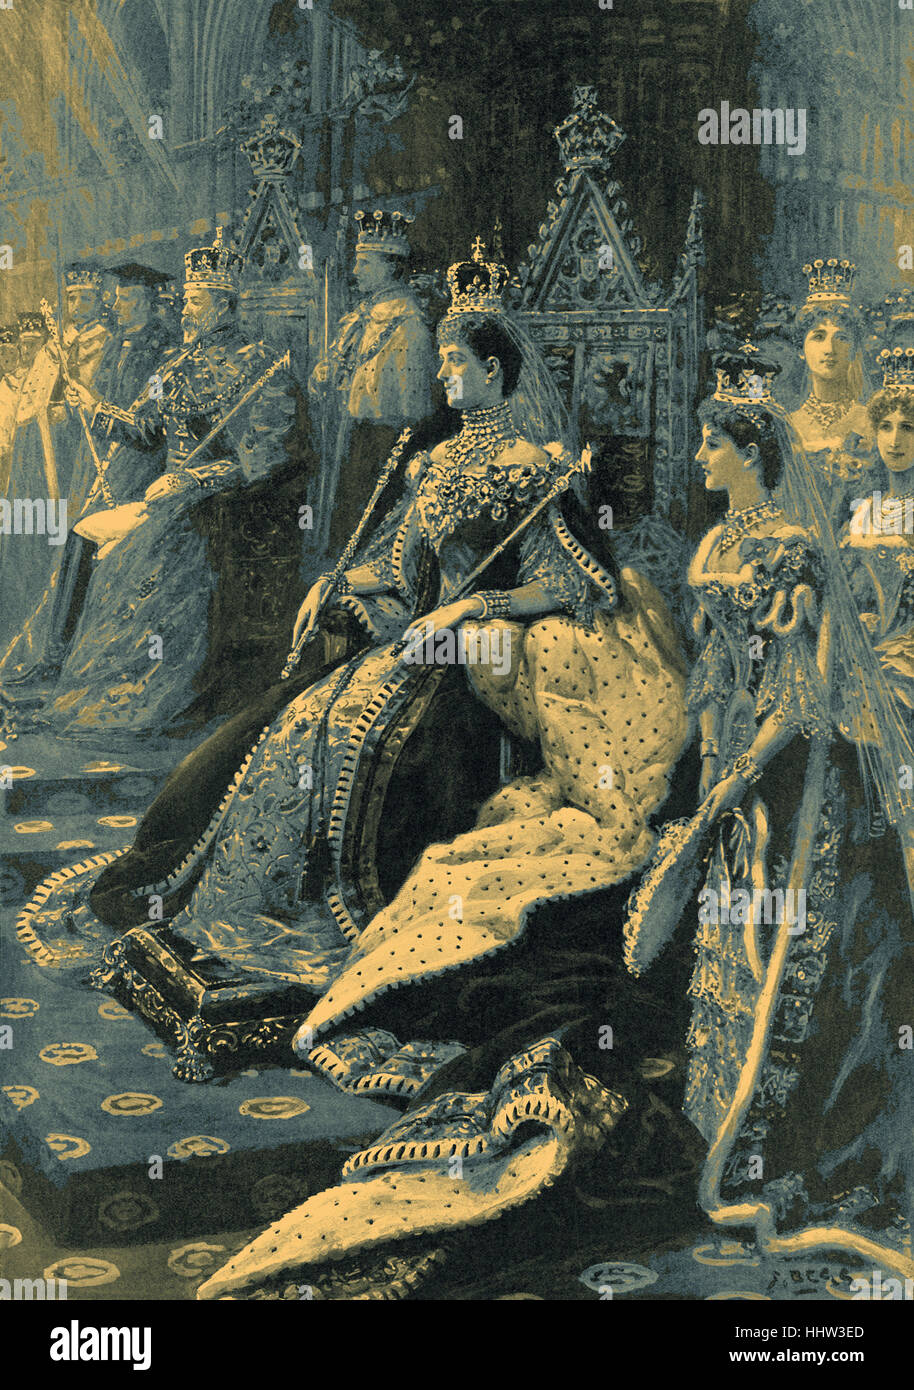 Enthronement of Alexandra as Queen Consort at the coronation of King Edward VII, 1902 - Stock Image